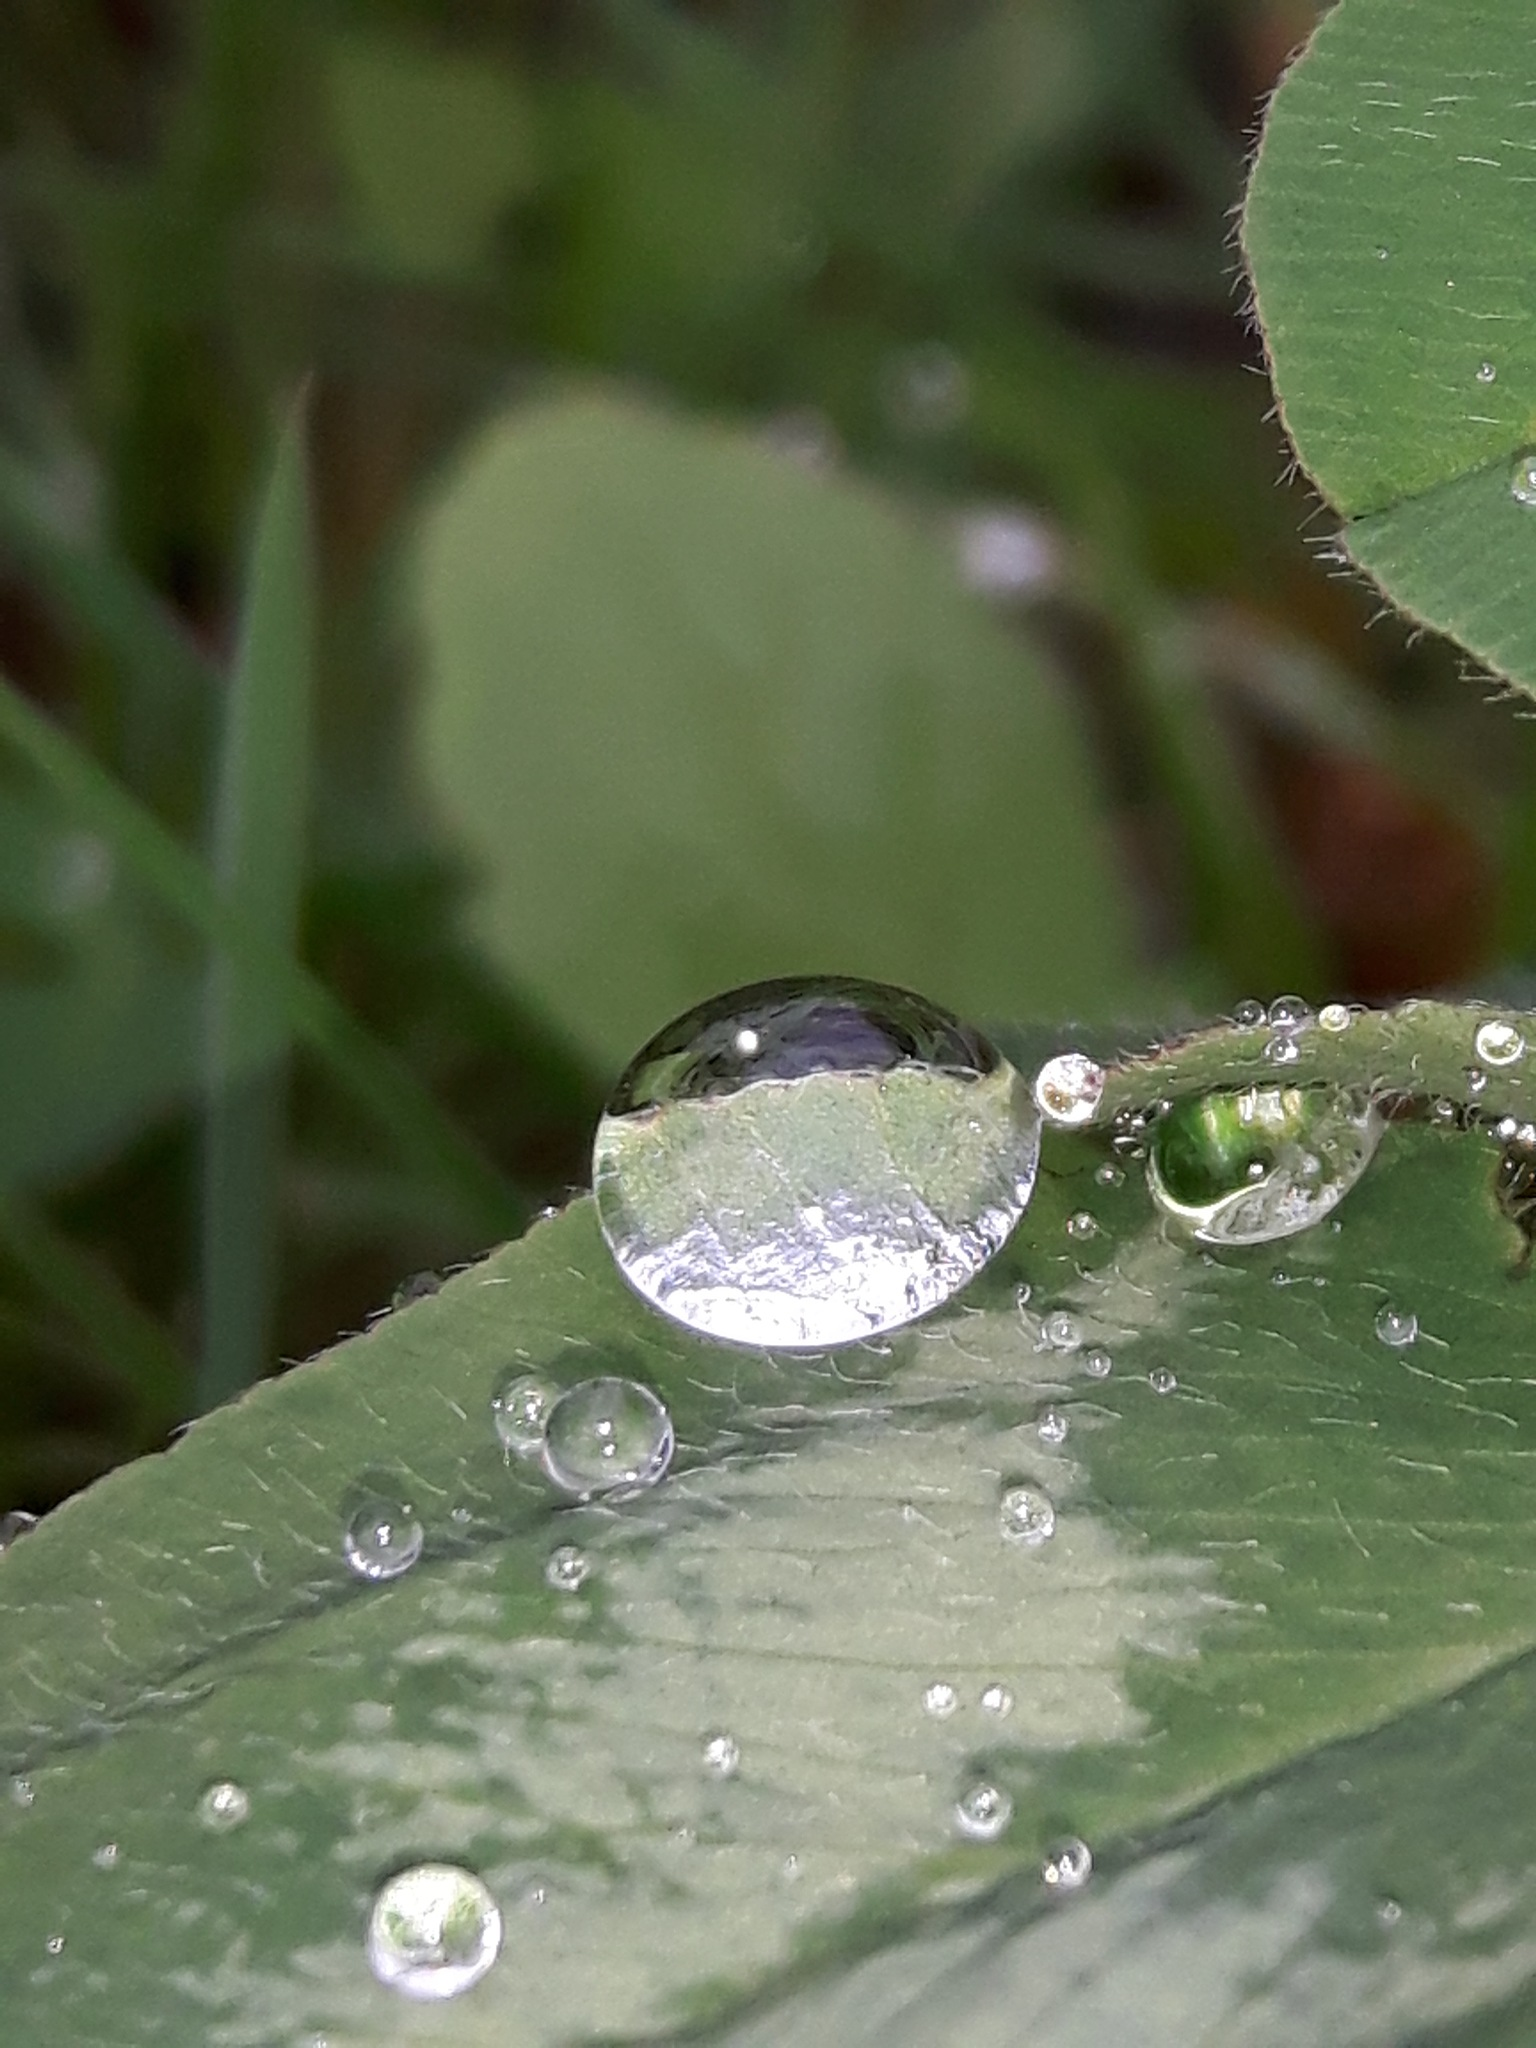 Drops on the clover leaf by Mevludin_Hasanovic